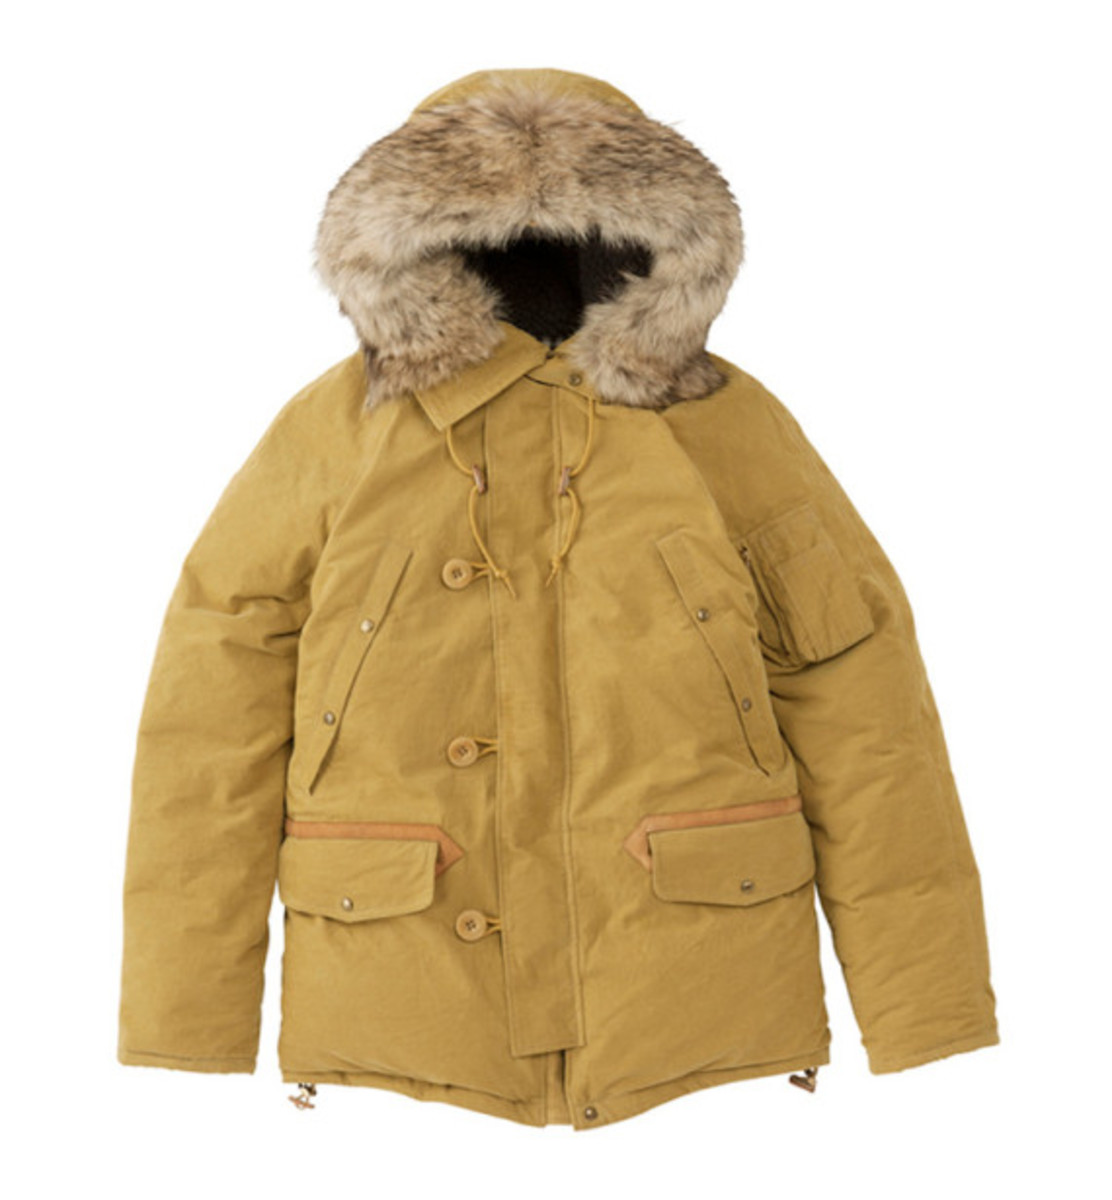 visvim-valdez-down-jacket-2l-03